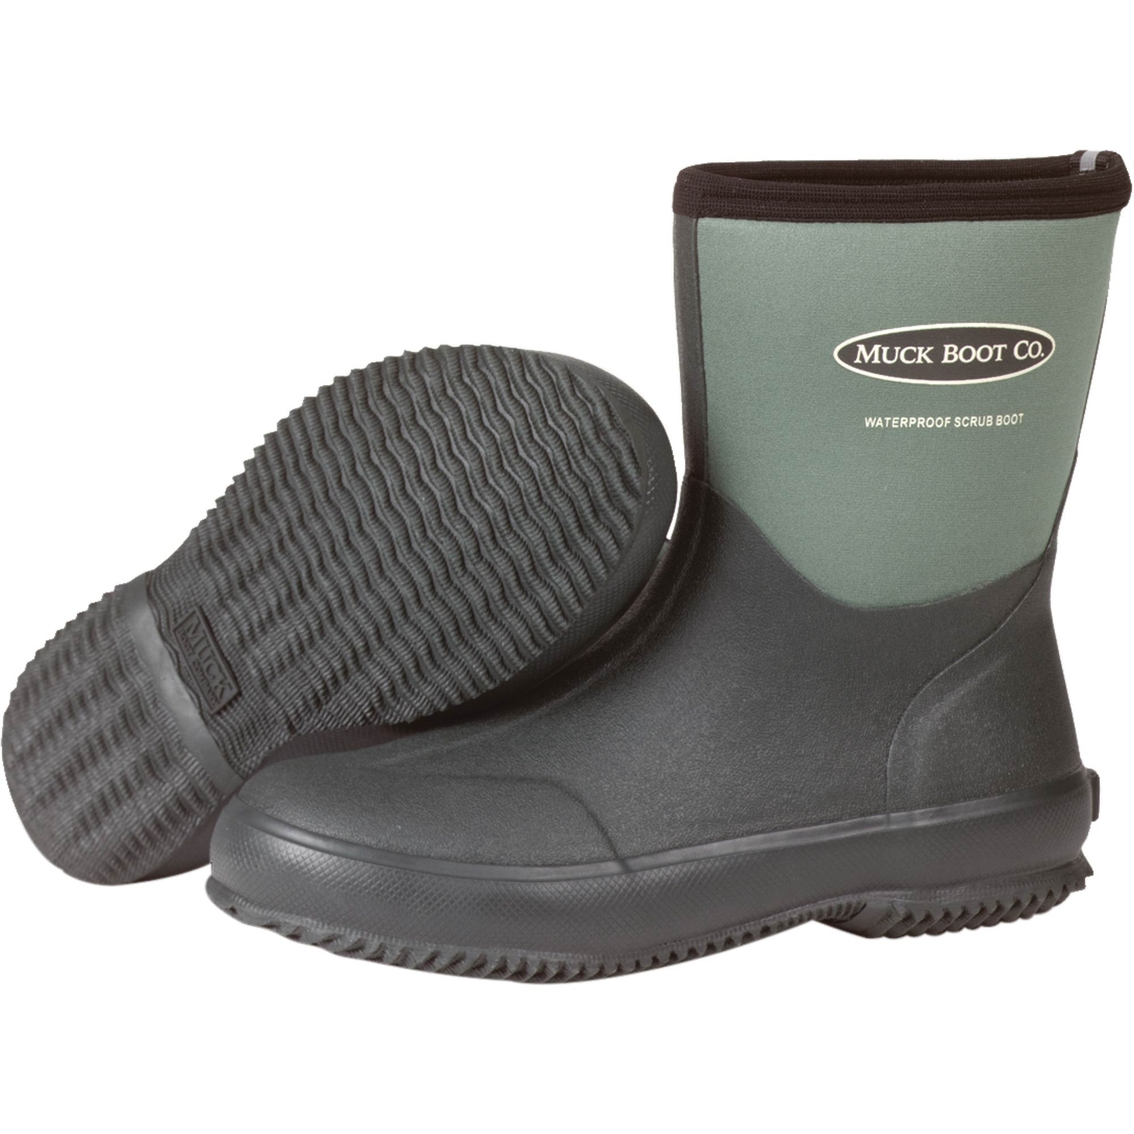 the original muck boot company men 39 s garden boots work